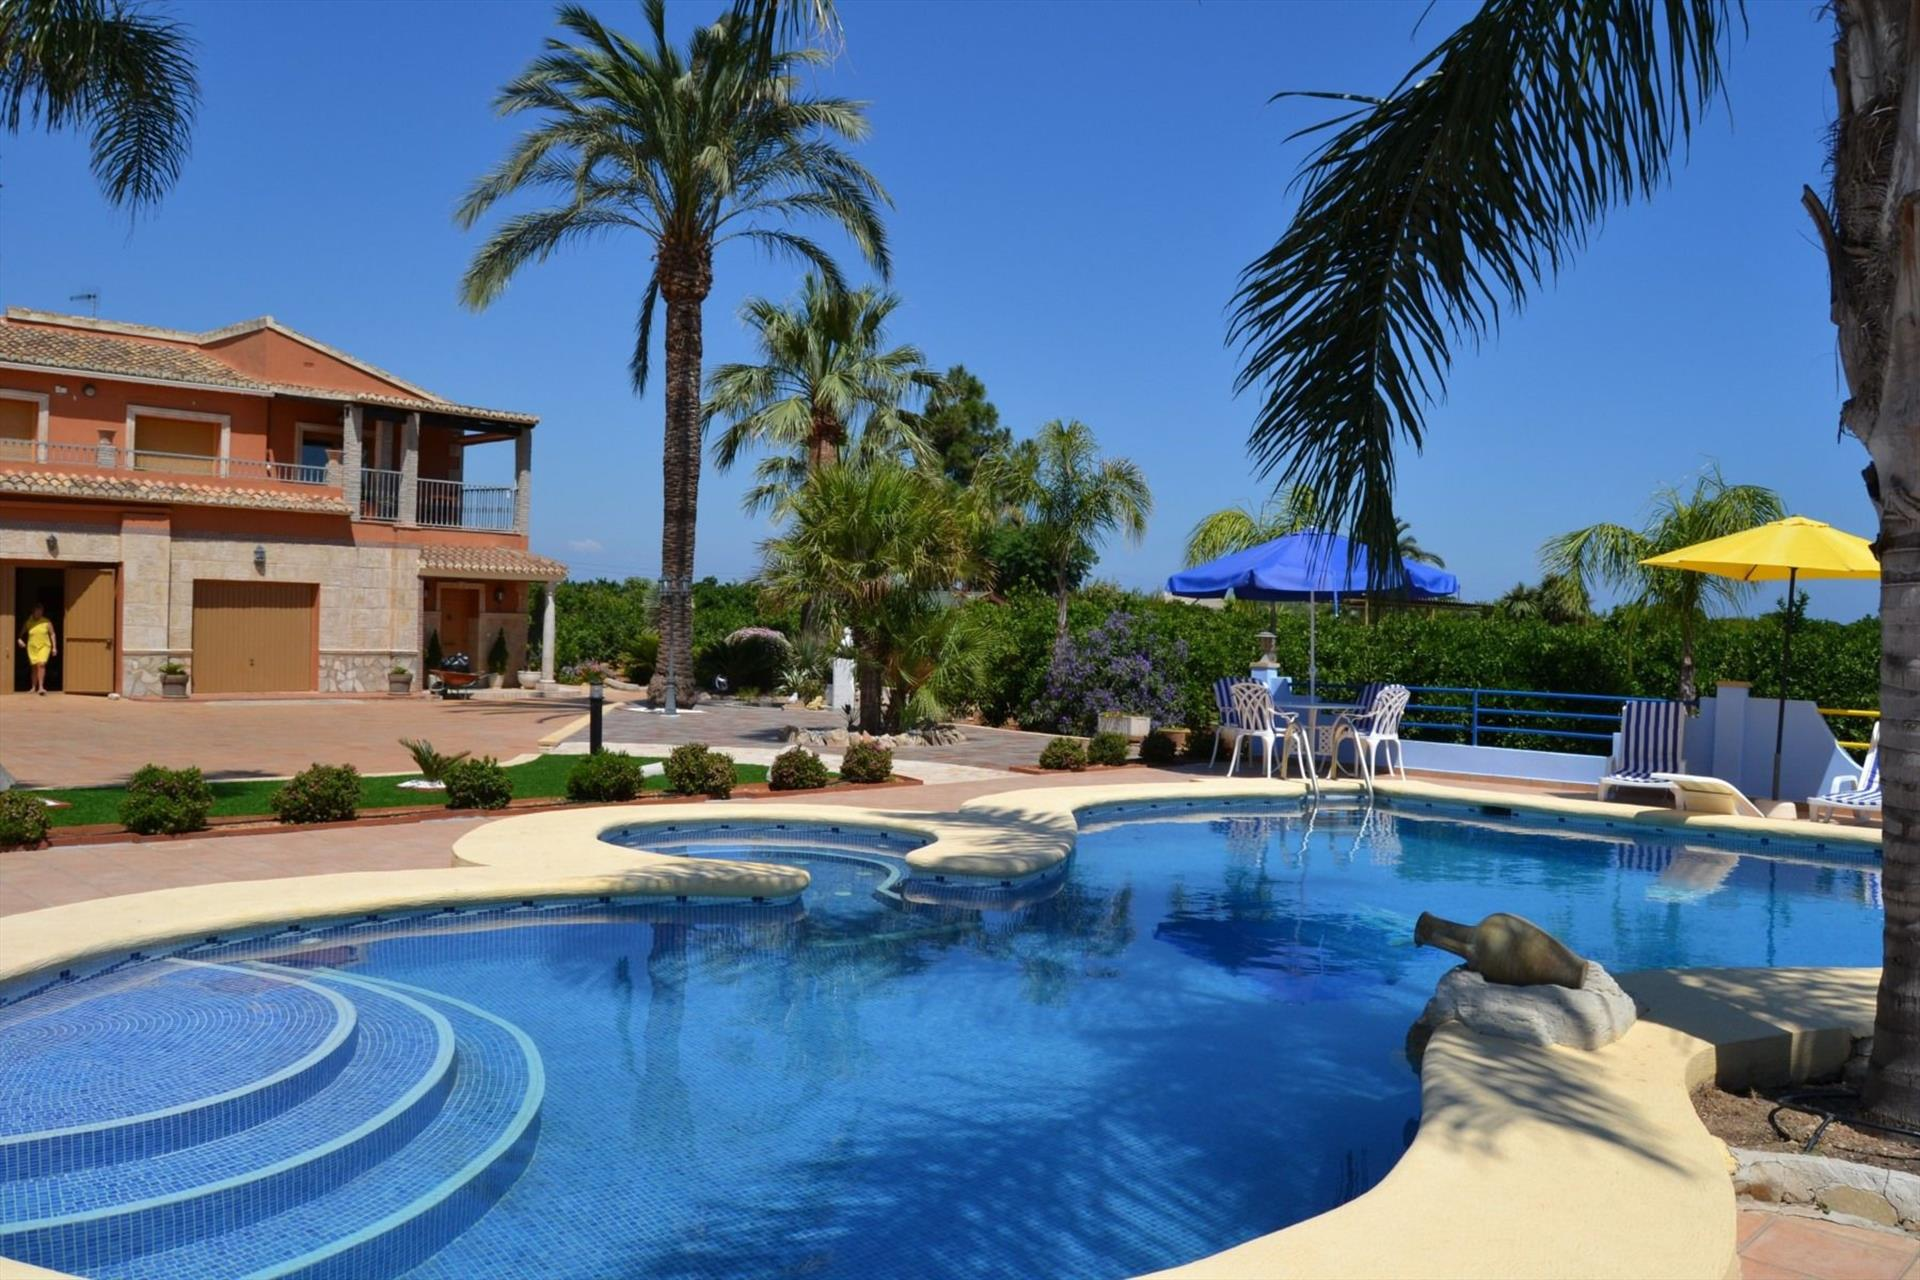 El Palmar Planta Baja Chalet AP3220, Large and comfortable apartment  with communal pool in Denia, on the Costa Blanca, Spain for 8 persons.....